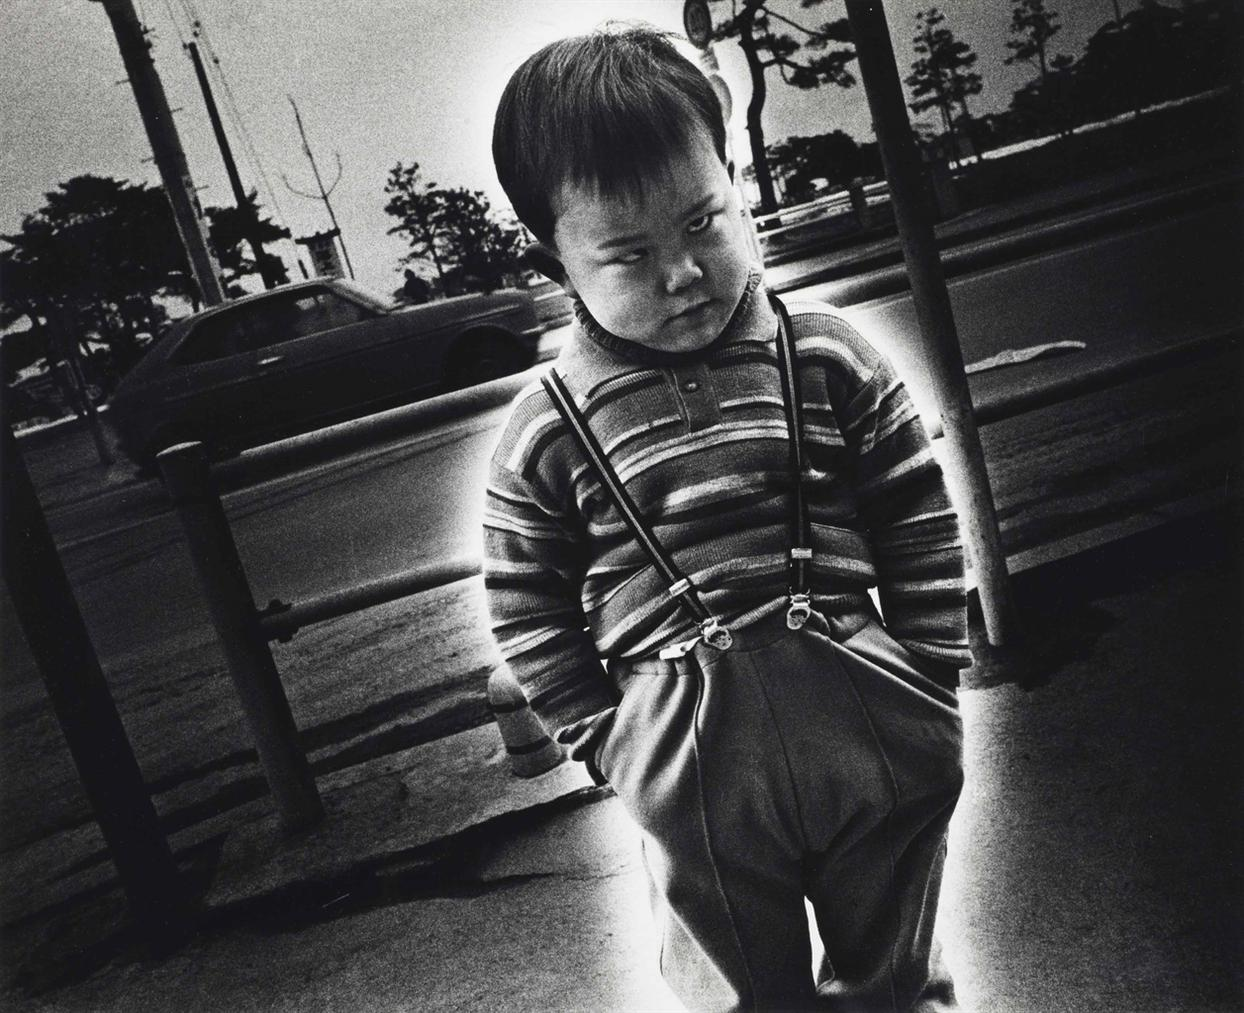 Daido Moriyama-The Three Views Of Japan No. 3 - Mutsu Matsushima-1974